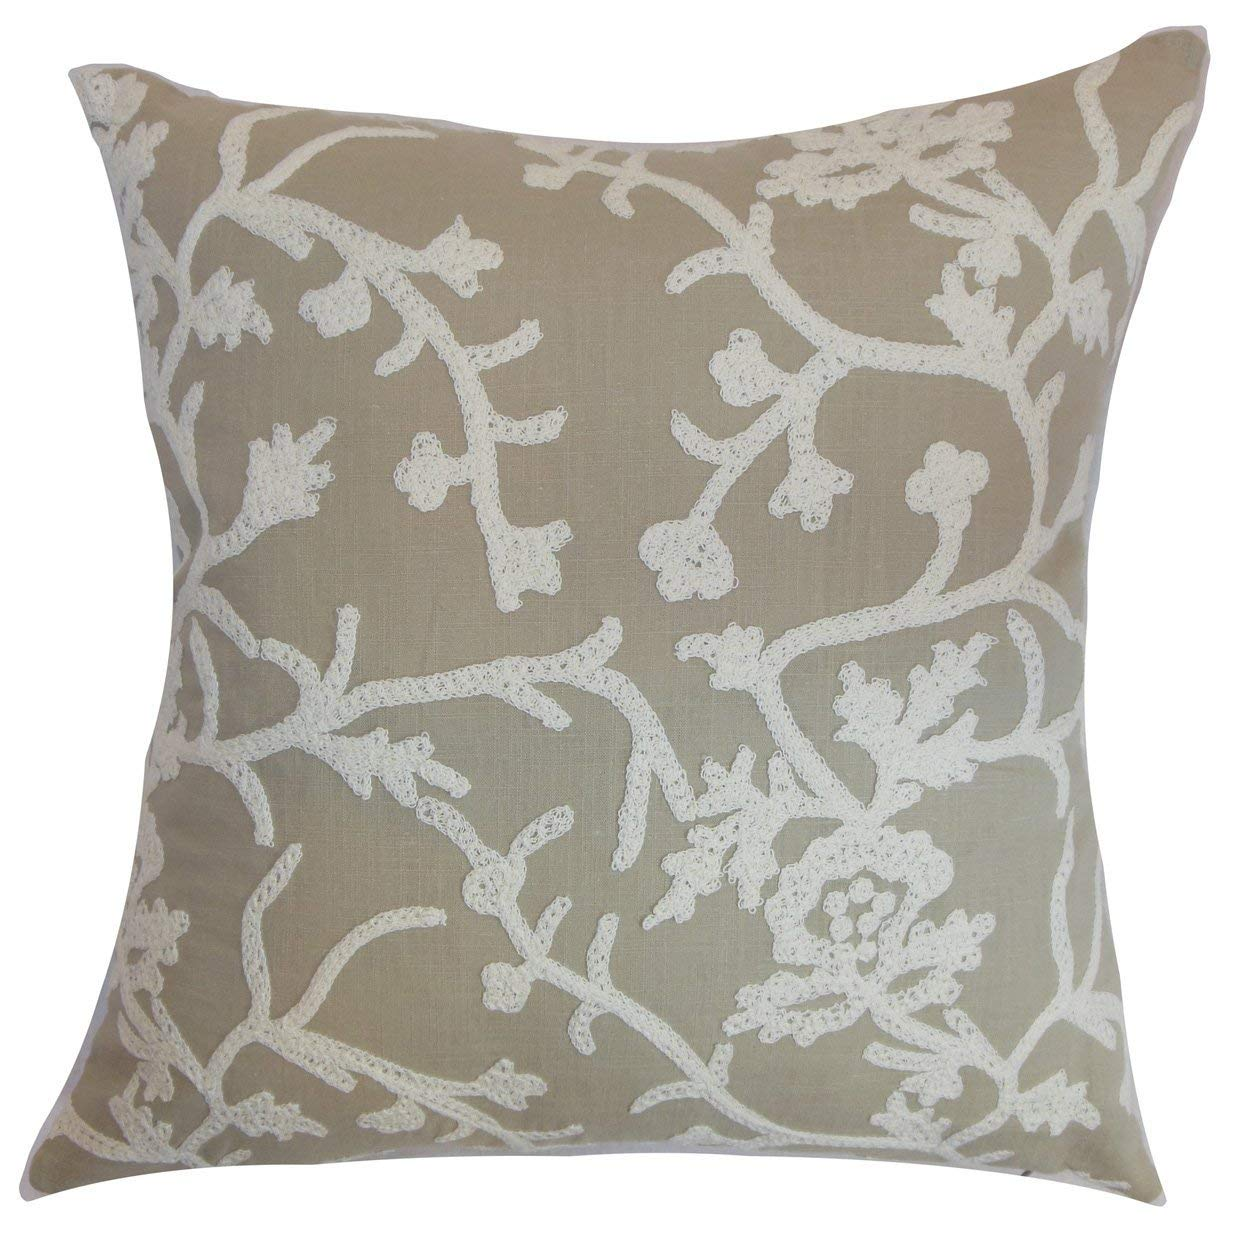 The Pillow Collection Paksane Floral Throw Pillow Cover PUM